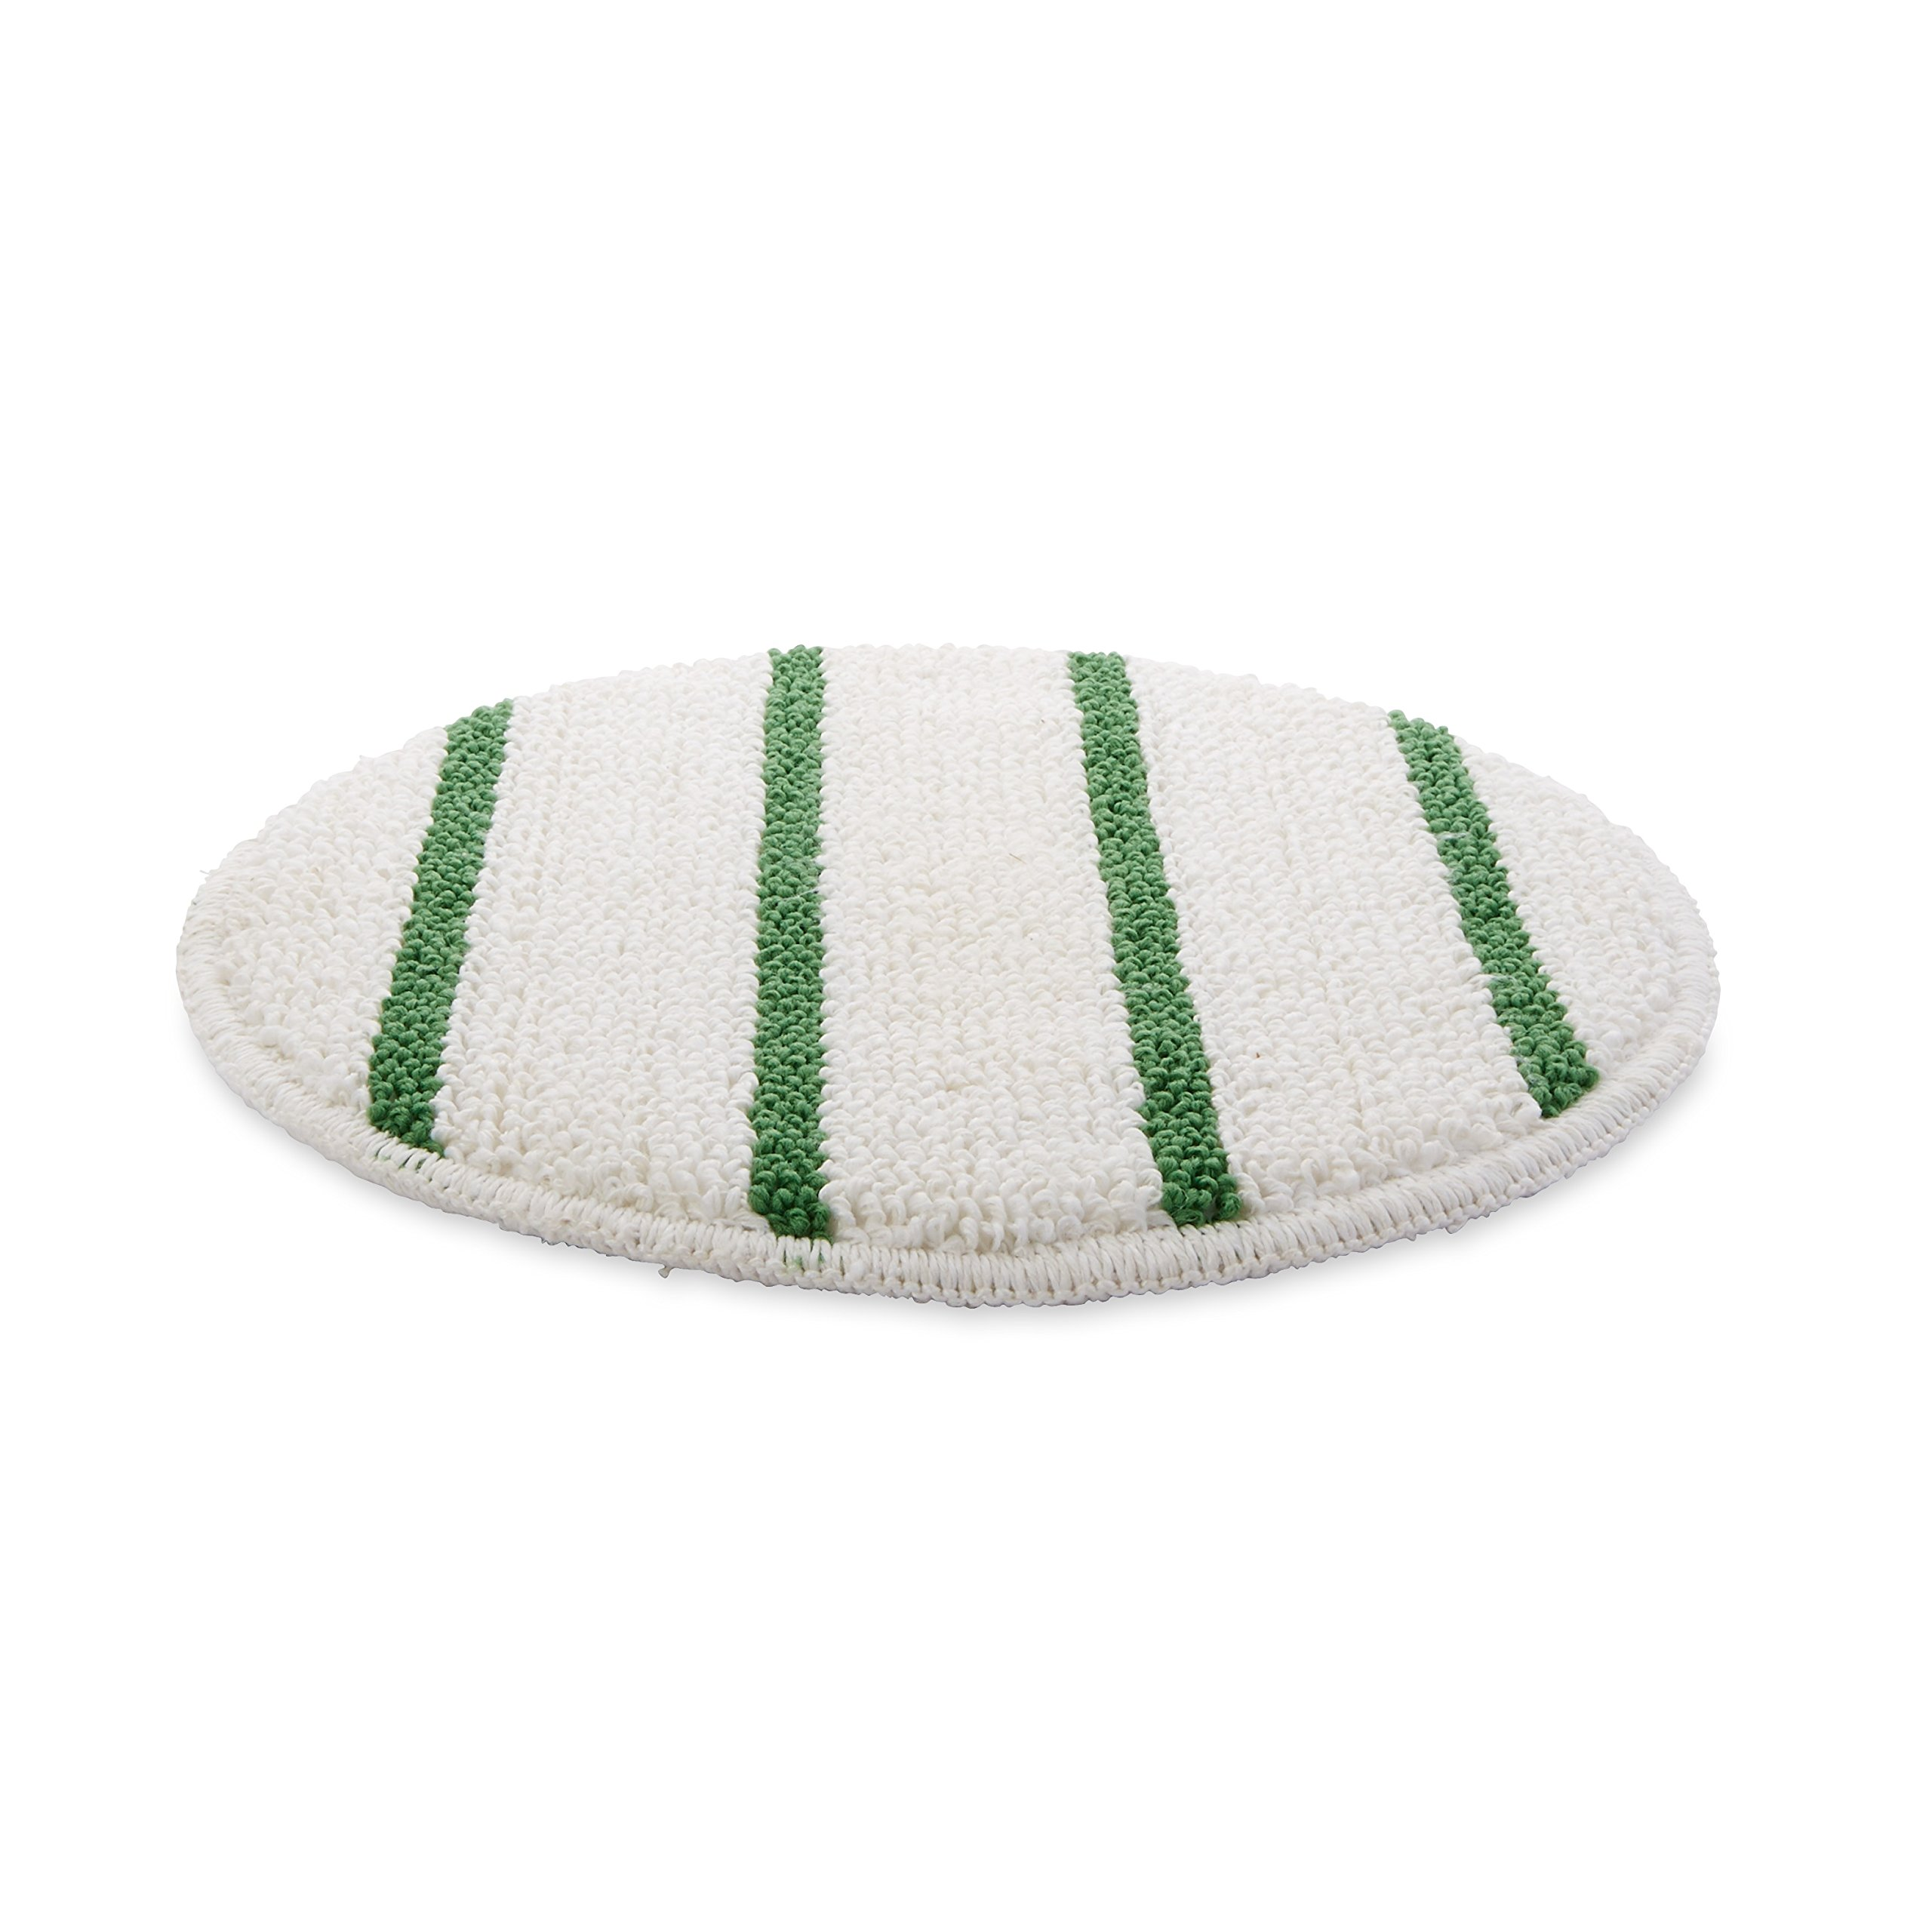 Rubbermaid Commercial Low-Profile Carpet Bonnet with Green Scrubber Strips, 17'', FGP26700WH00 by Rubbermaid Commercial Products (Image #1)